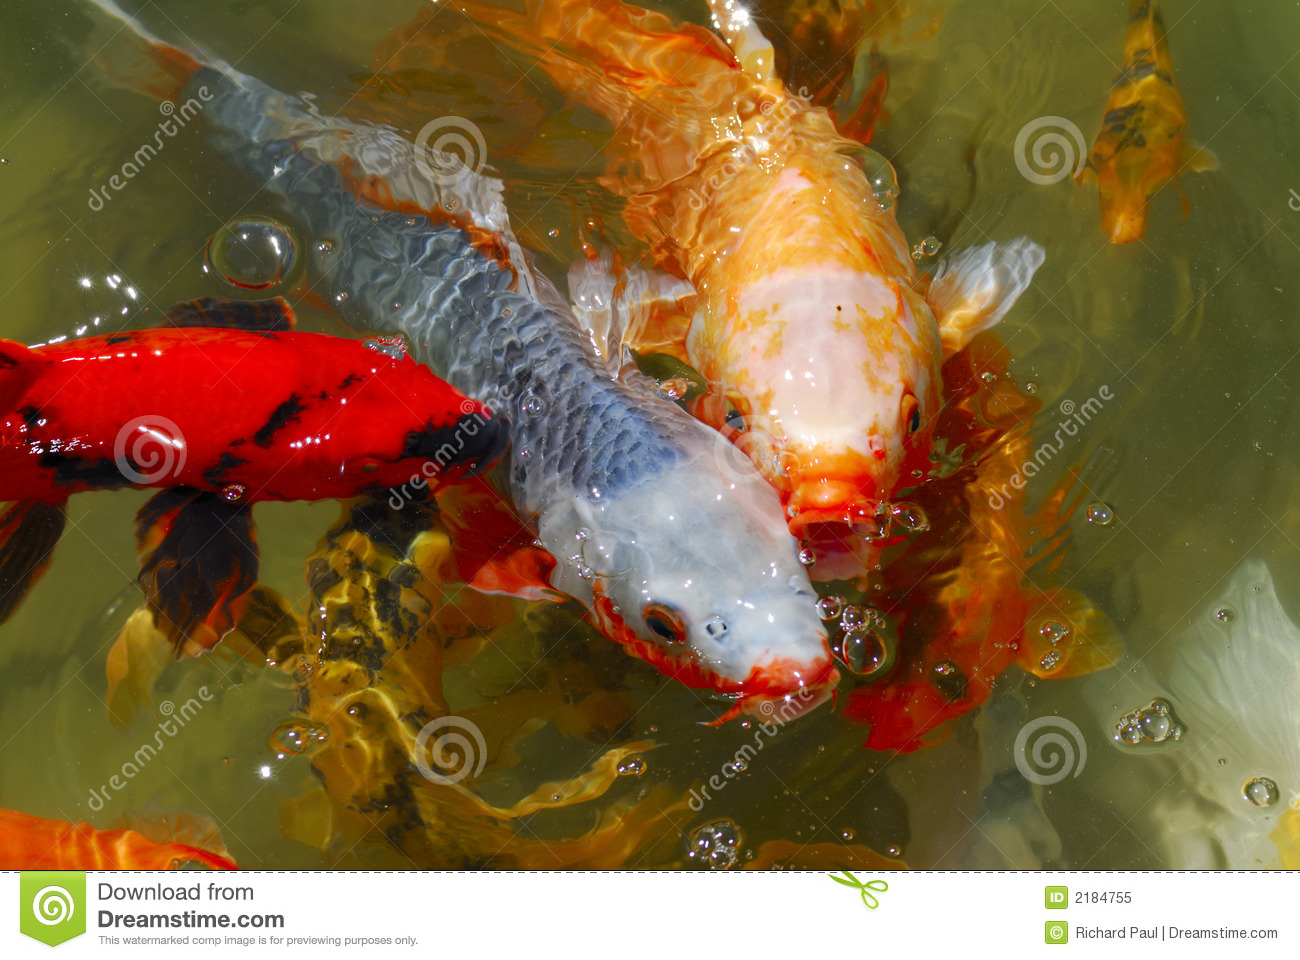 Japanese tea garden koi fish royalty free stock photo for Japanese koi carp fish